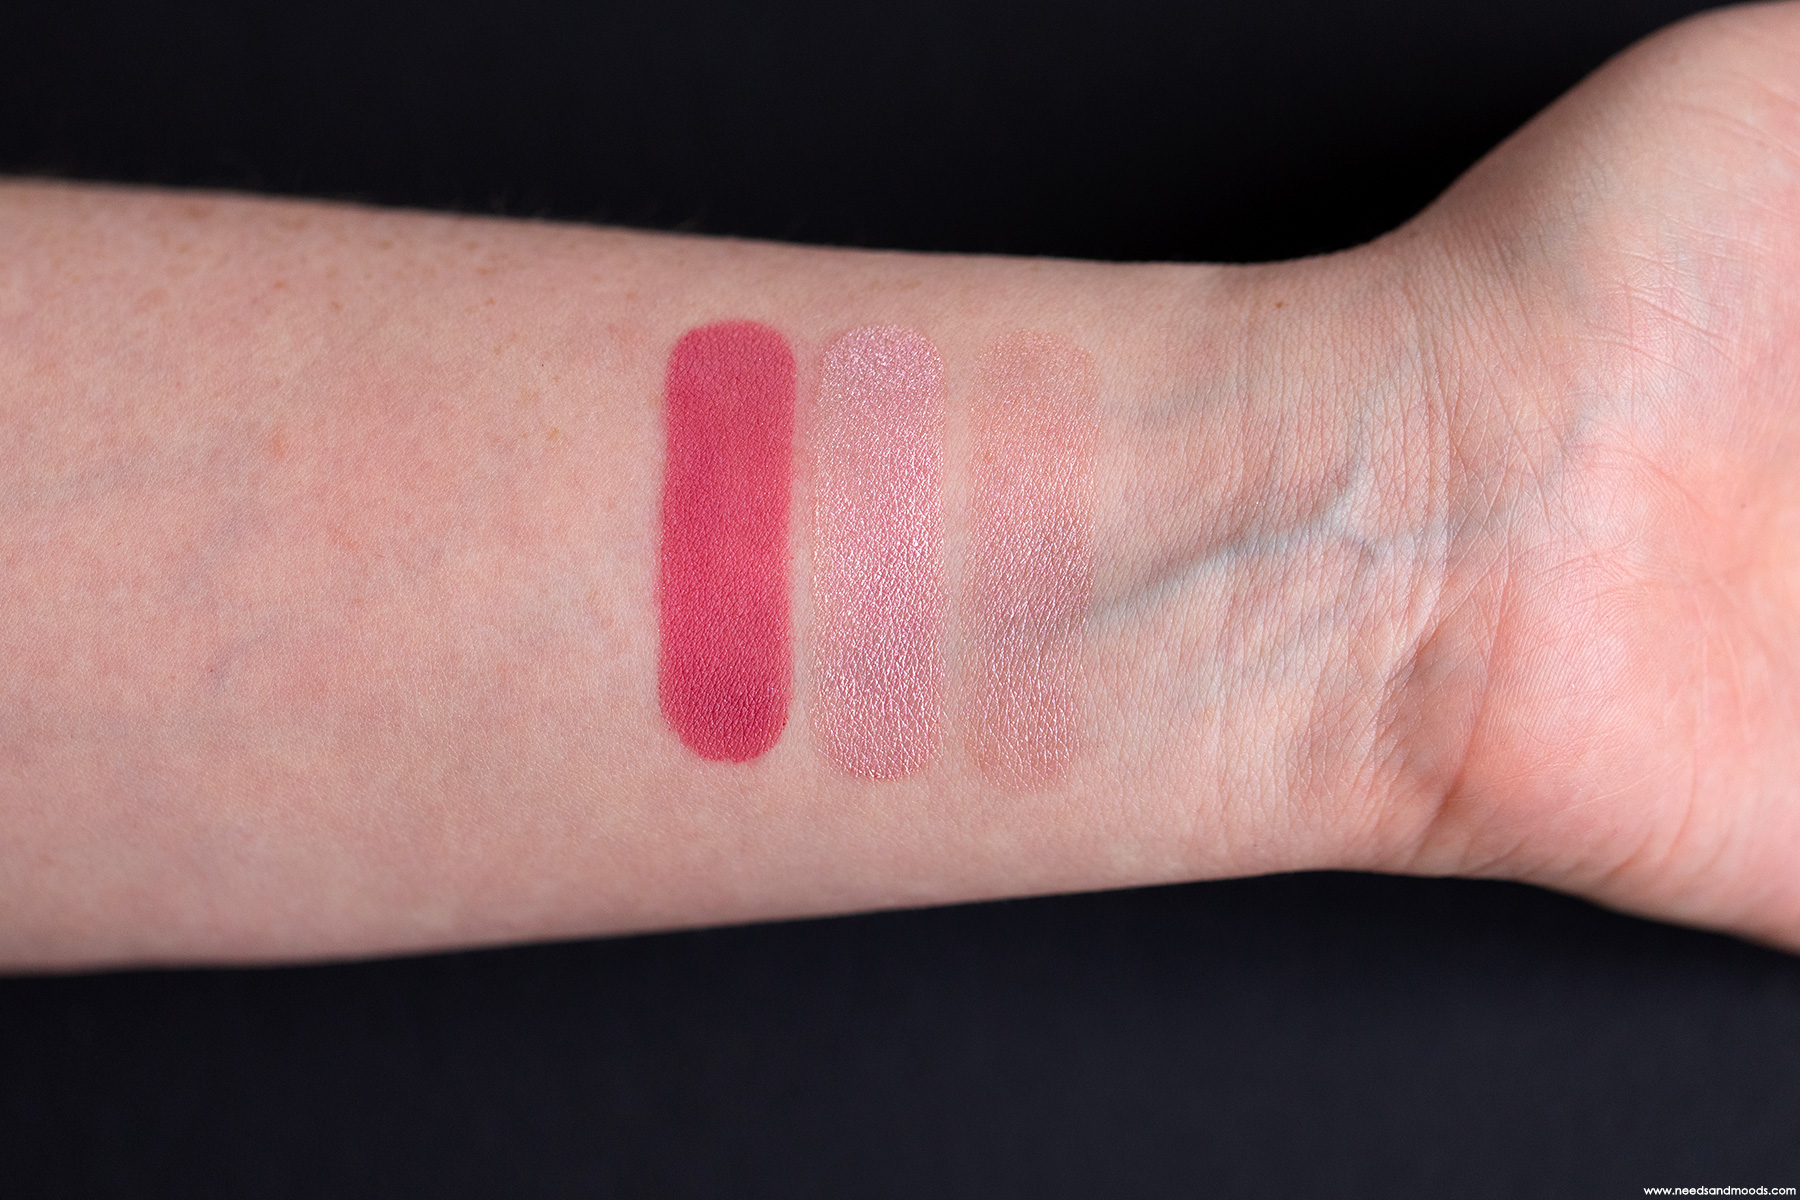 dior-3-couleurs-tri-o-blique-rosy-canvas-swatch